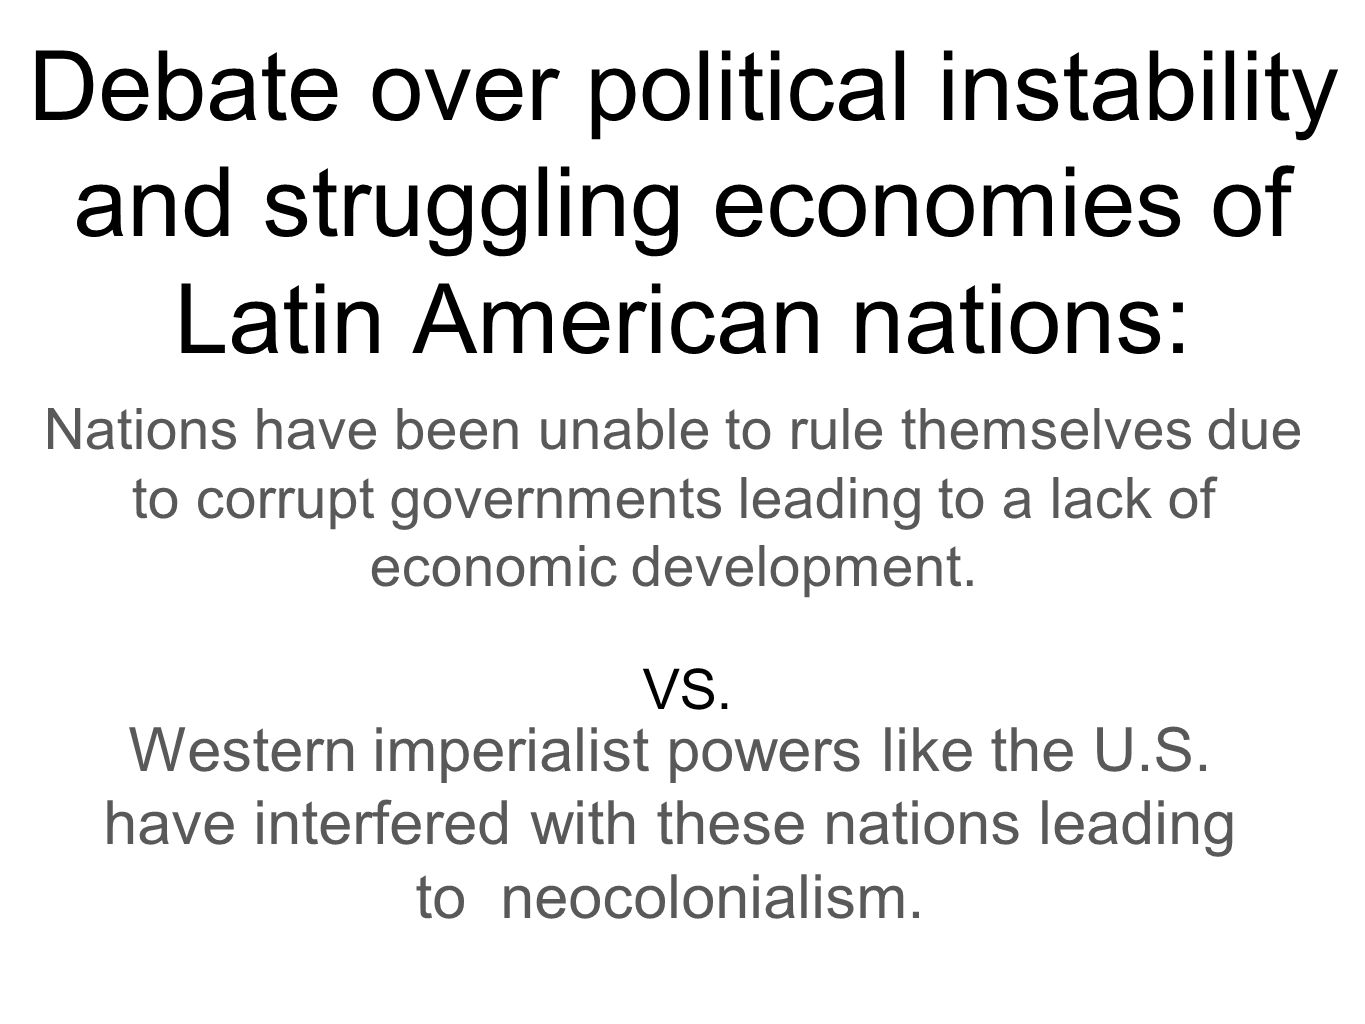 Debate over political instability and struggling economies of Latin American nations: